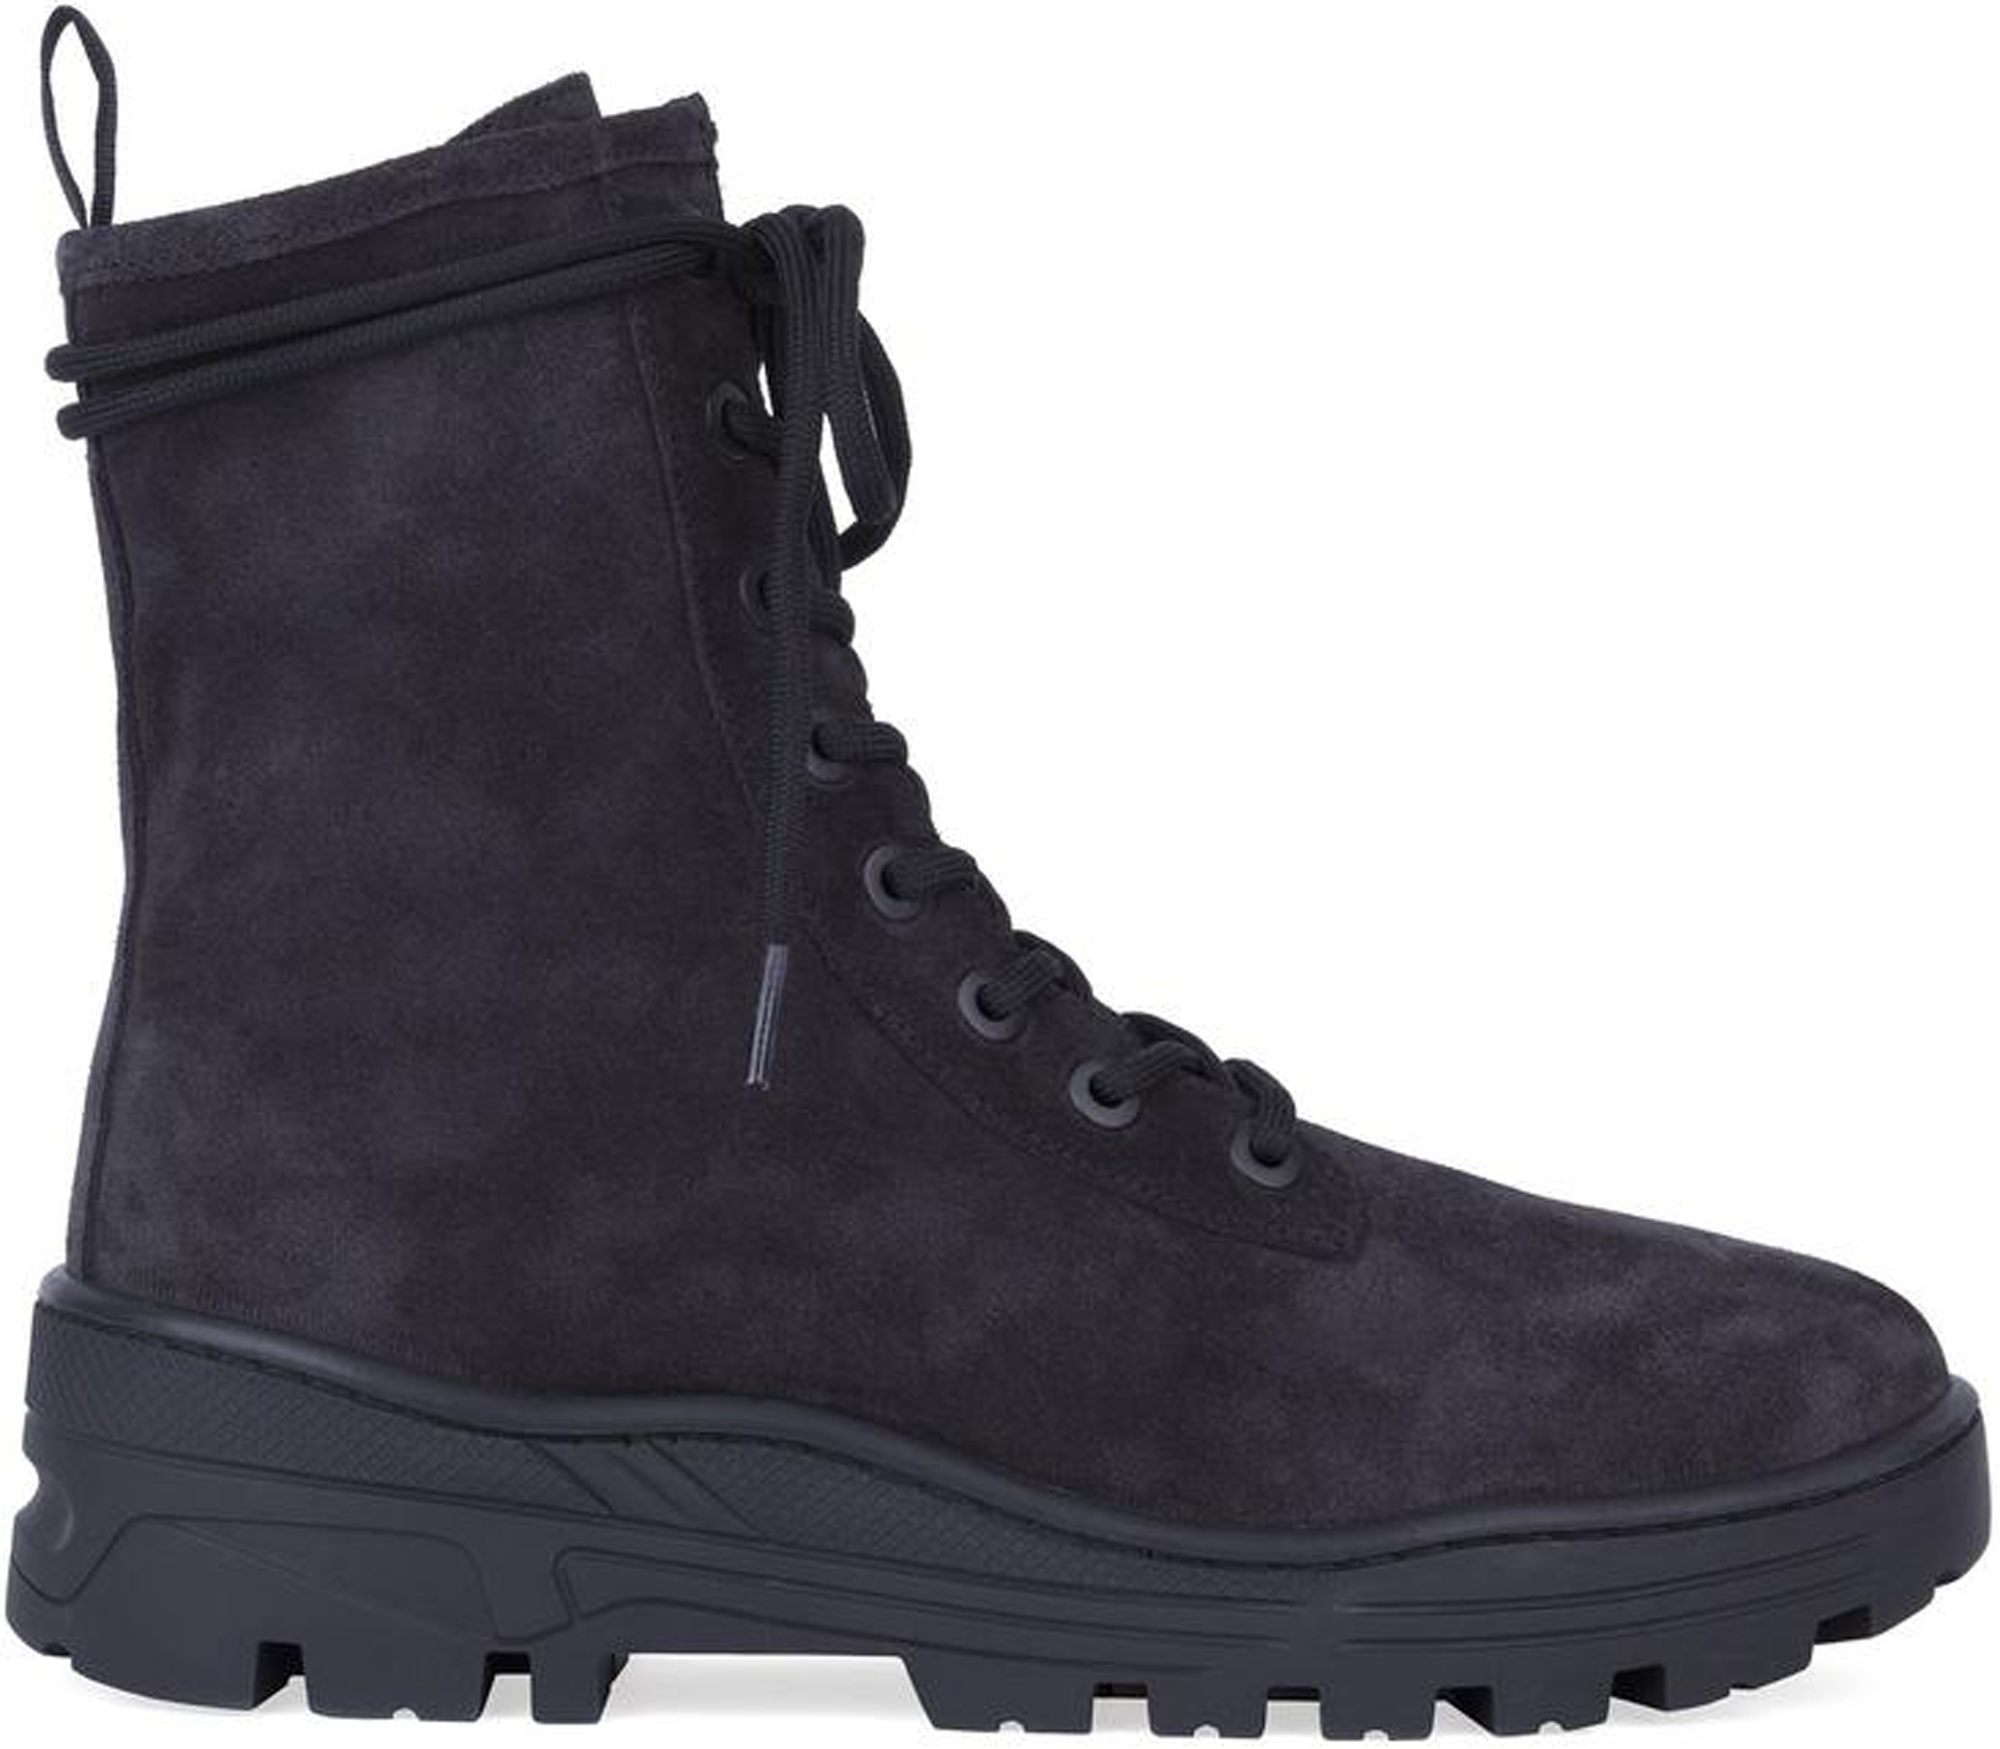 Yeezy Thick Suede Combat Boot Graphite